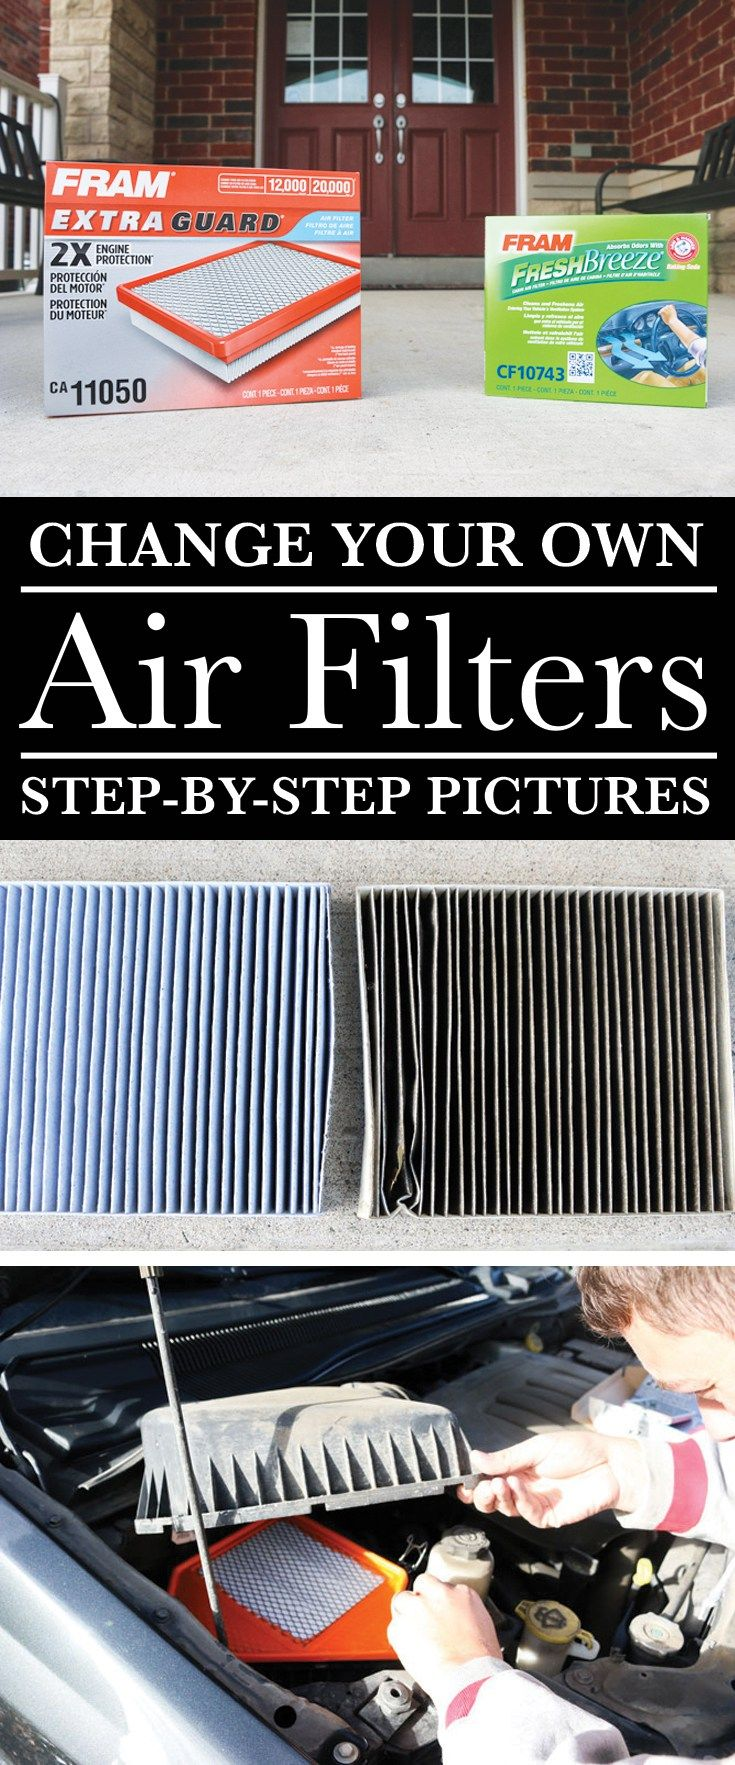 Stepbystep pictures for changing your cabin air filter